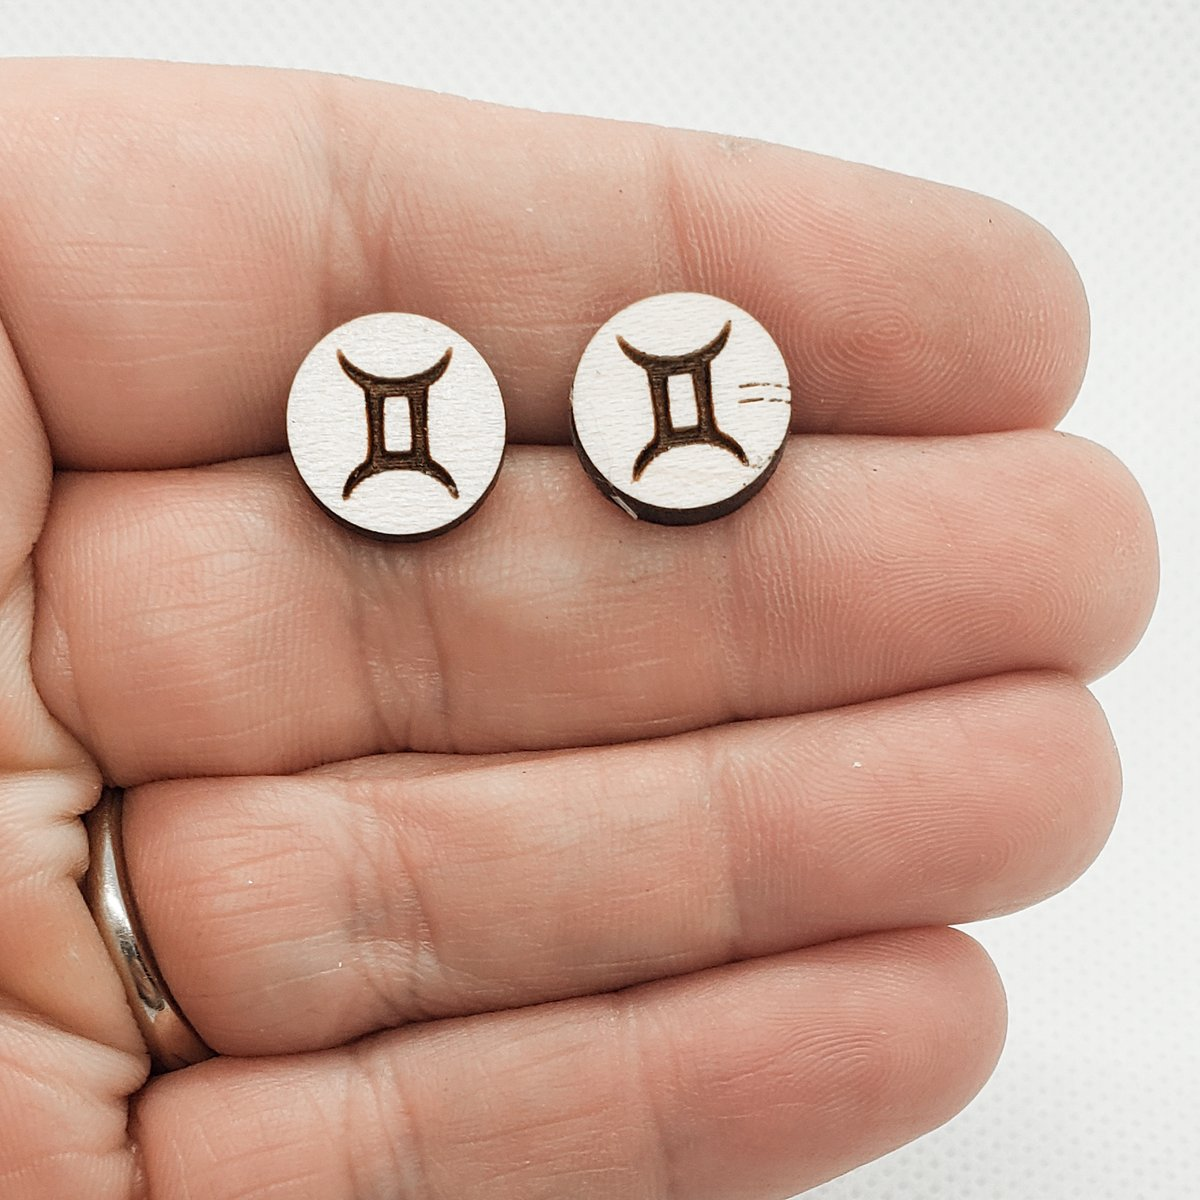 These Gemini earrings the #EOTD in my #etsy shop.   https://www.etsy.com/listing/791199271/zodiac-earrings-zodiac-stud-earrings?ref=shop_home_active_1 …  Use the code HCDSOCIAL and get 25% off your entire purchase of these and any of the fun items through the link above.  #gemini #geminiearringspic.twitter.com/Iqpperi7Fu